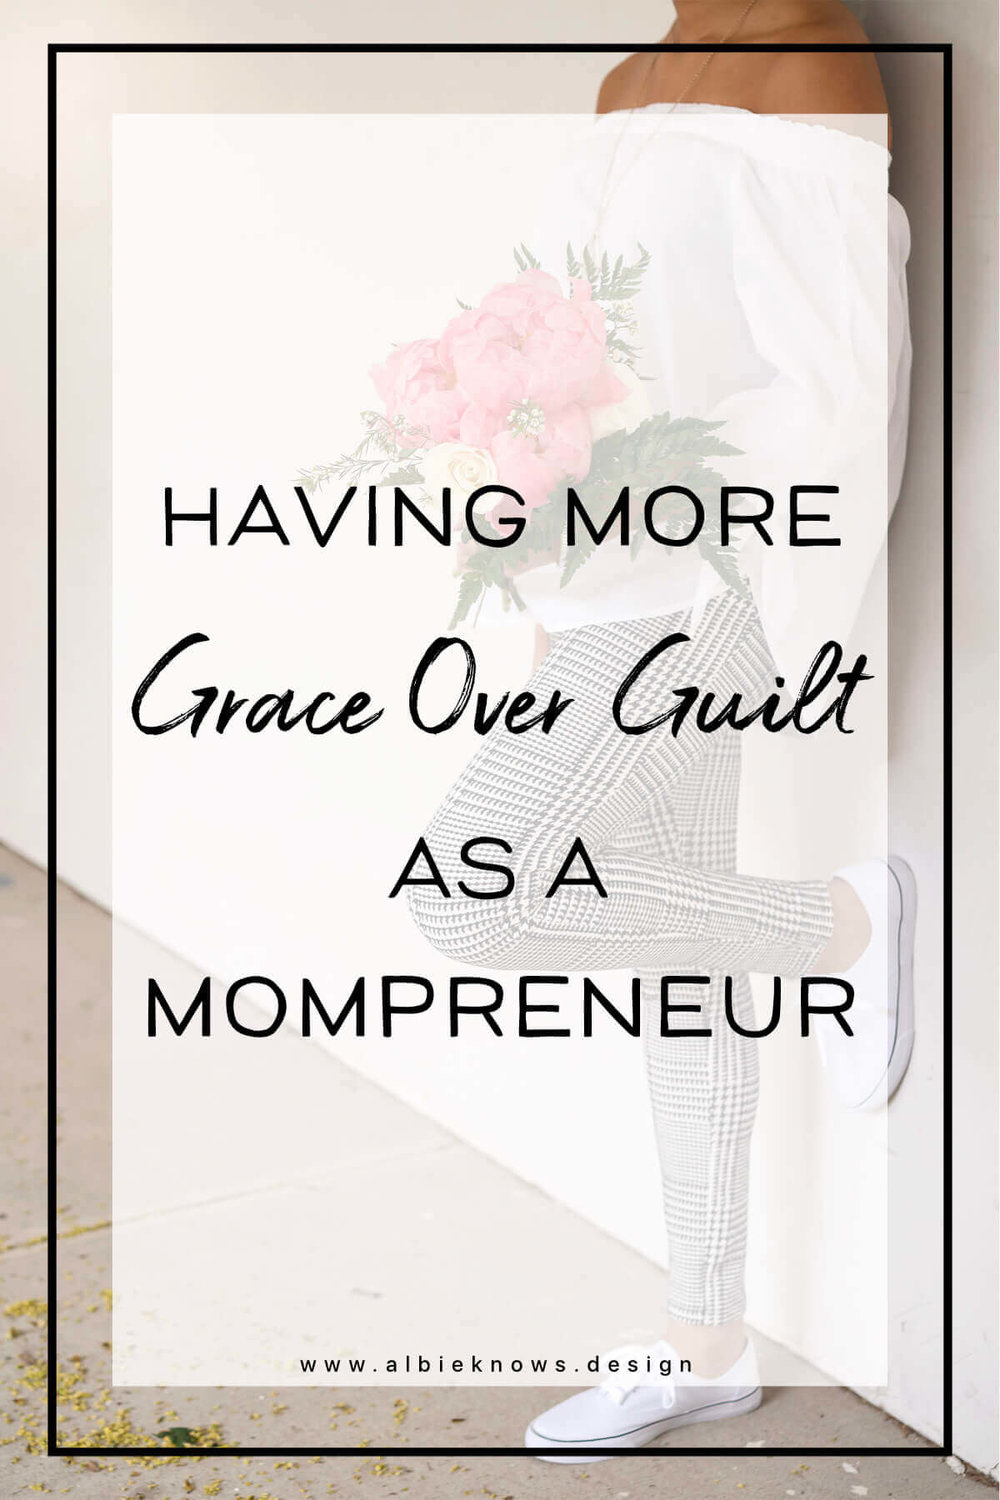 Dealing With & Surviving Mom Guilt As An Entrepreneur With Albie Knows